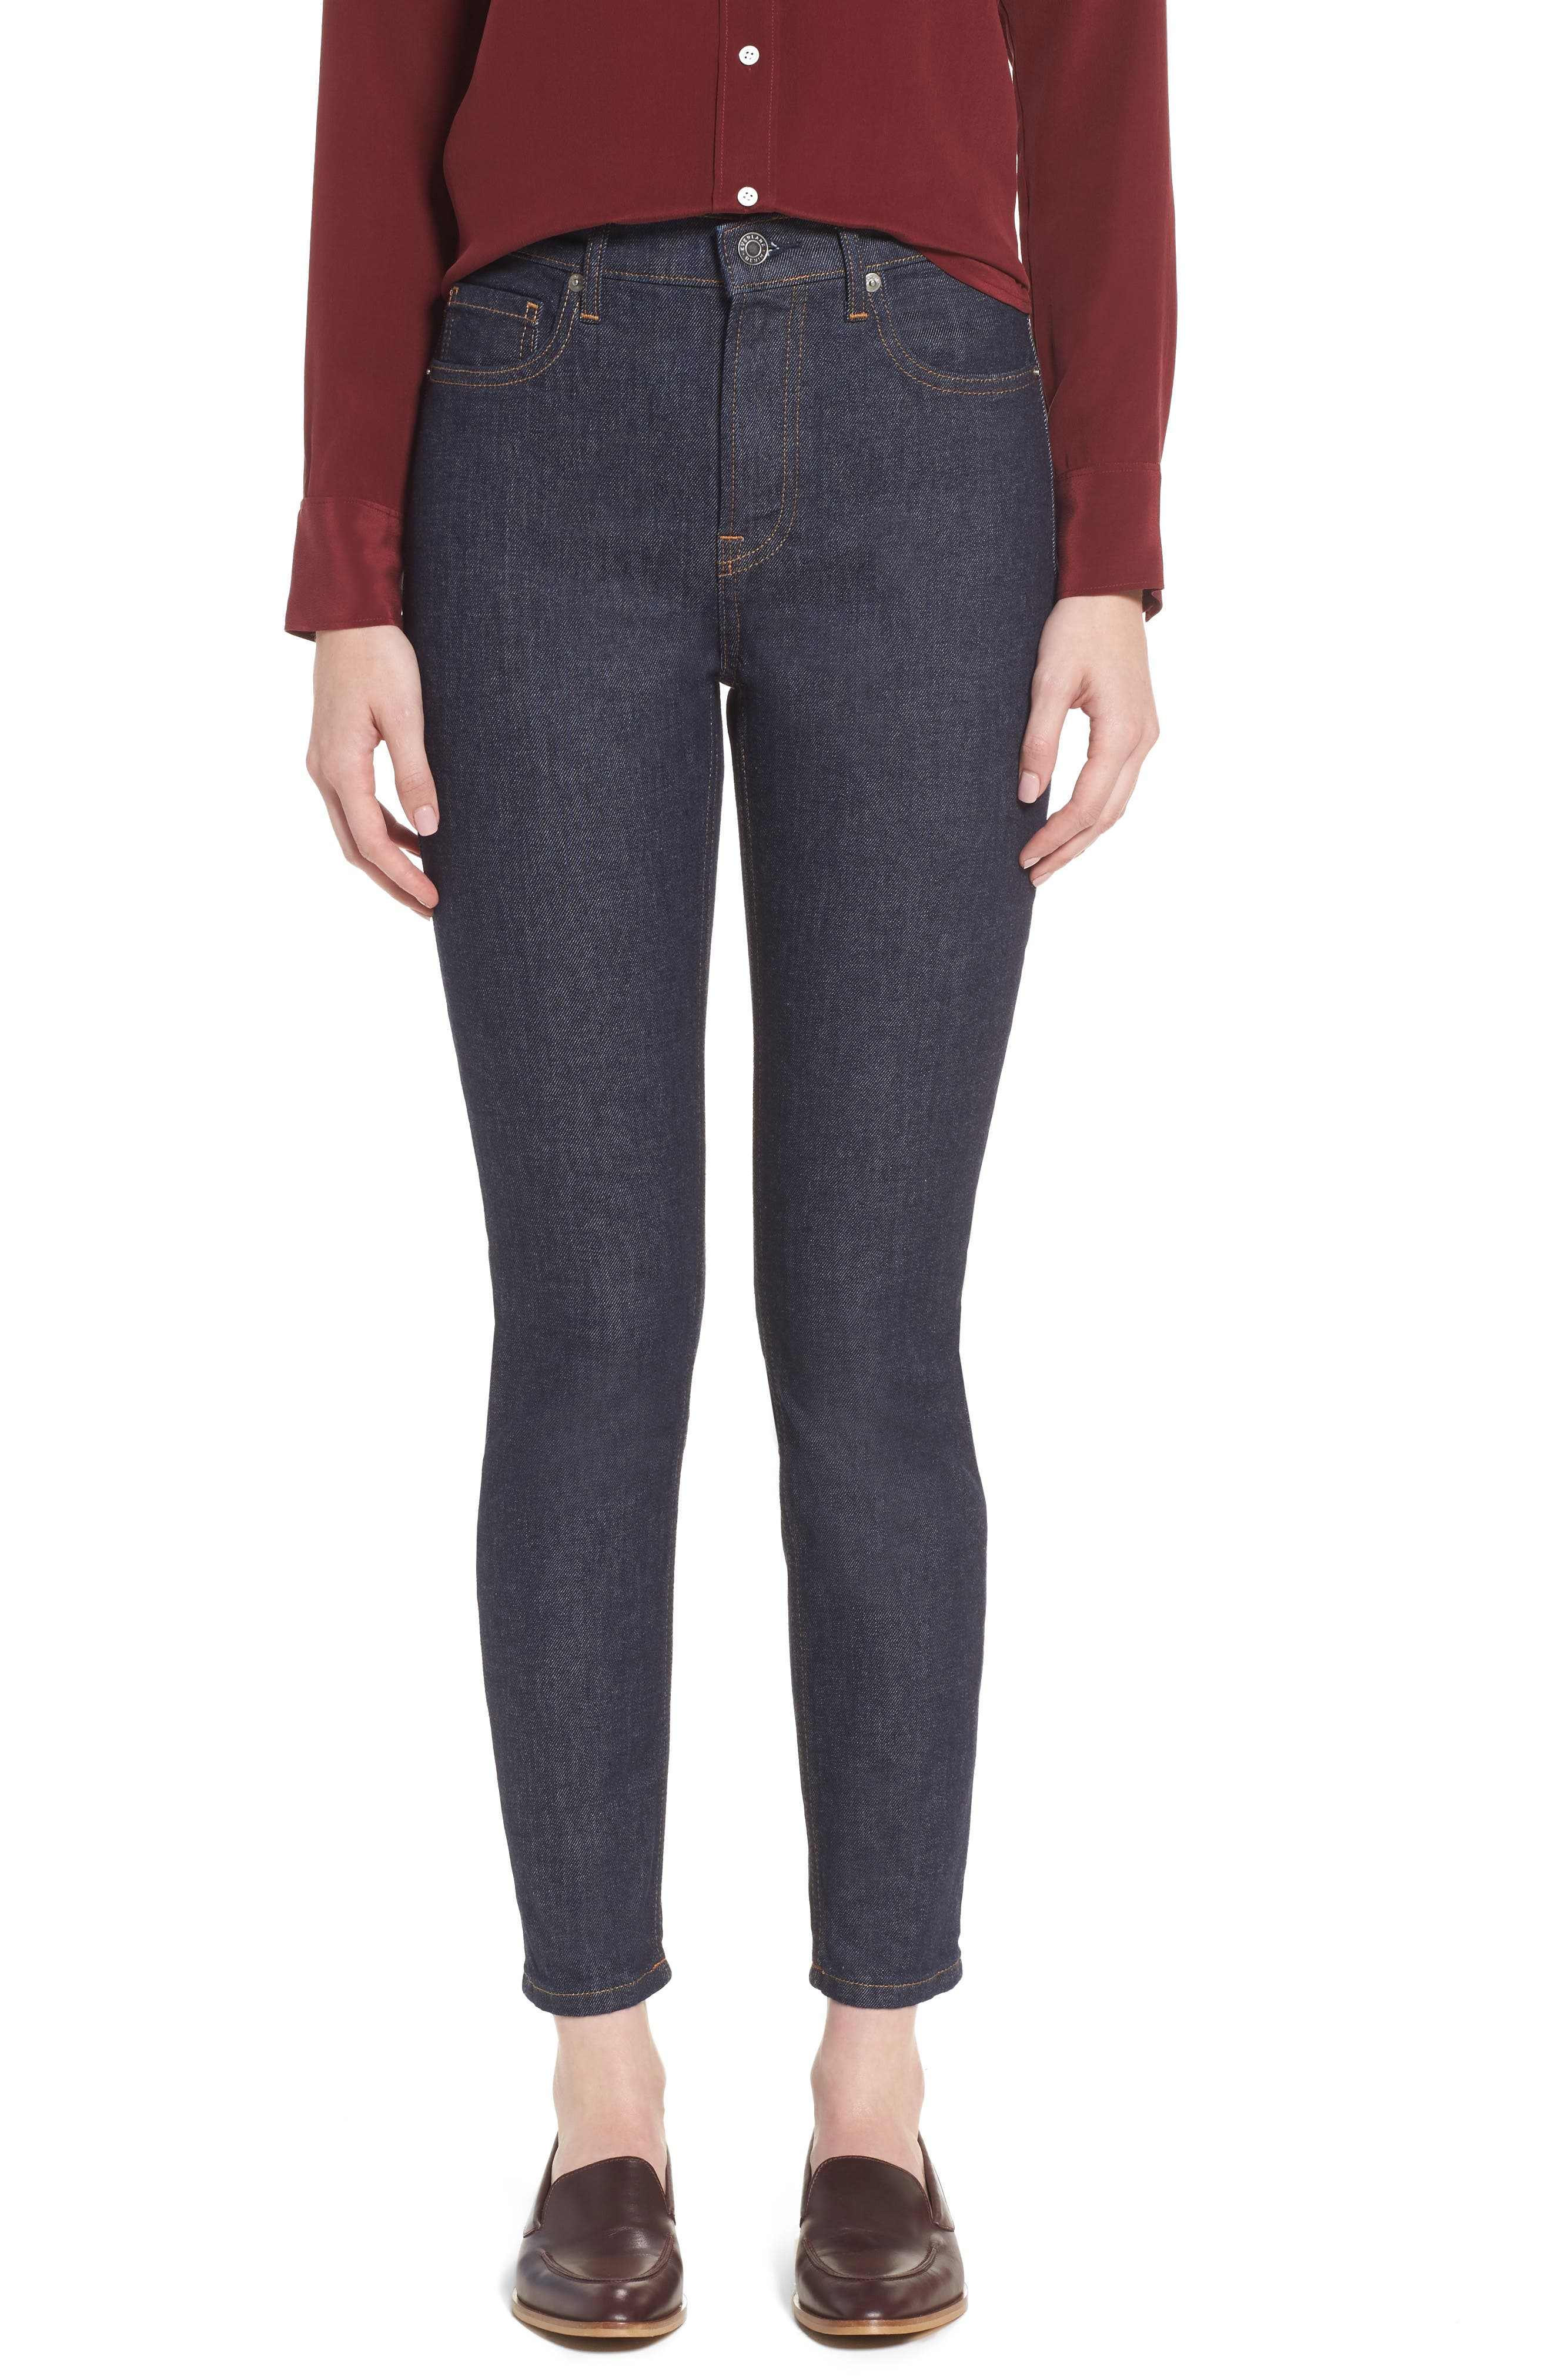 Alternate Image 1 Selected - Everlane The High Rise Skinny Jeans